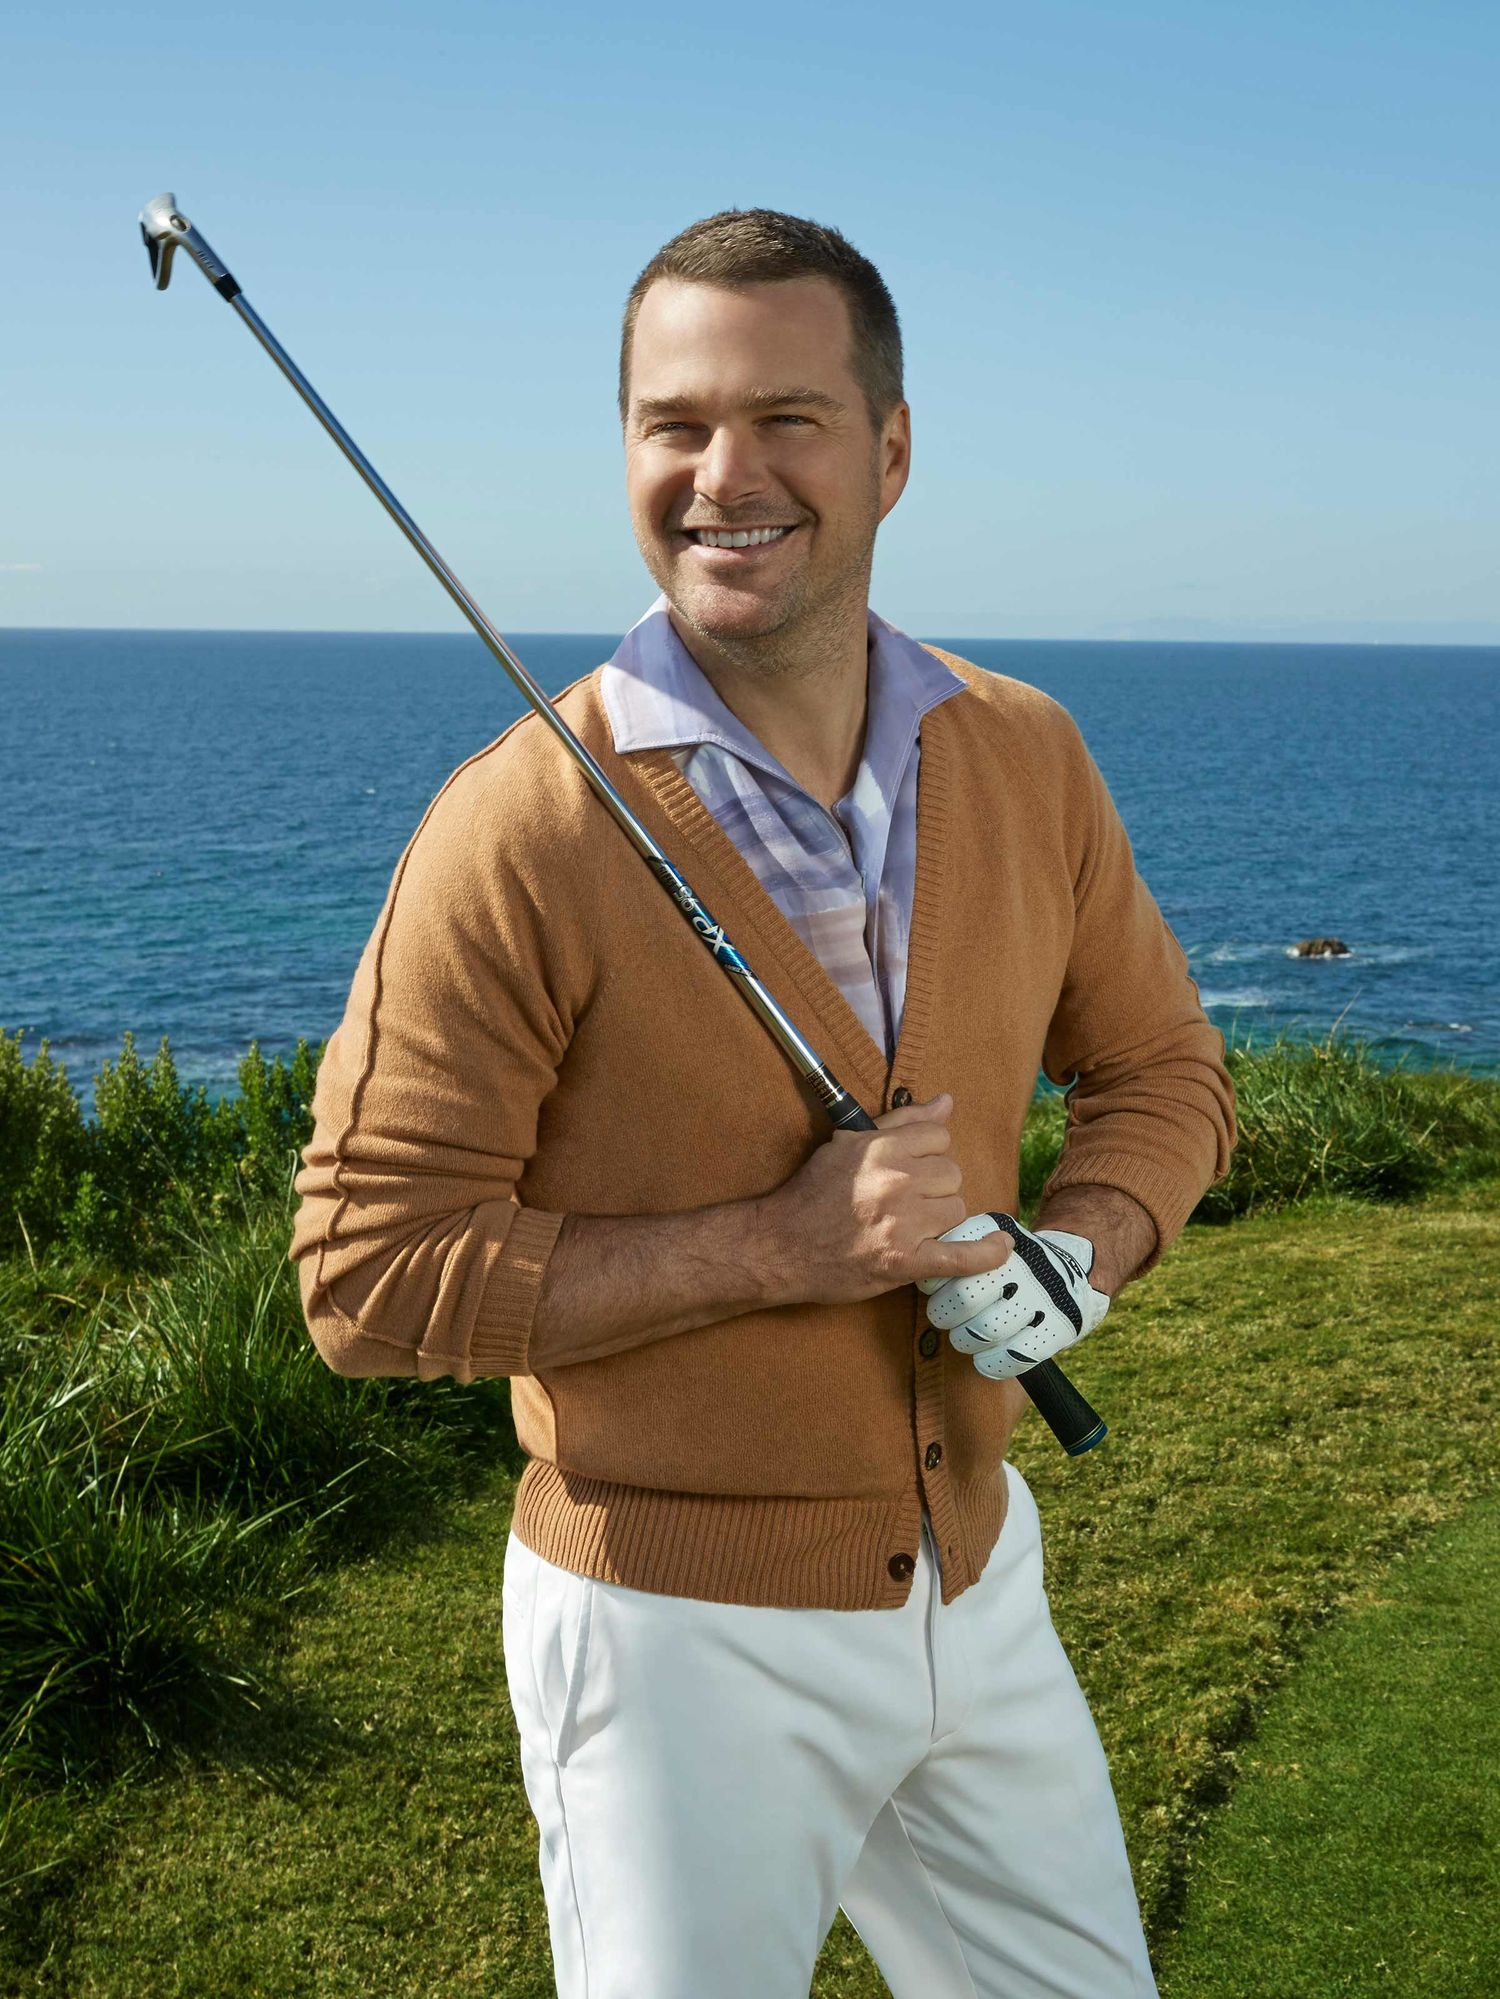 Chris O'Donnell holding a golf club and standing in front of the ocean